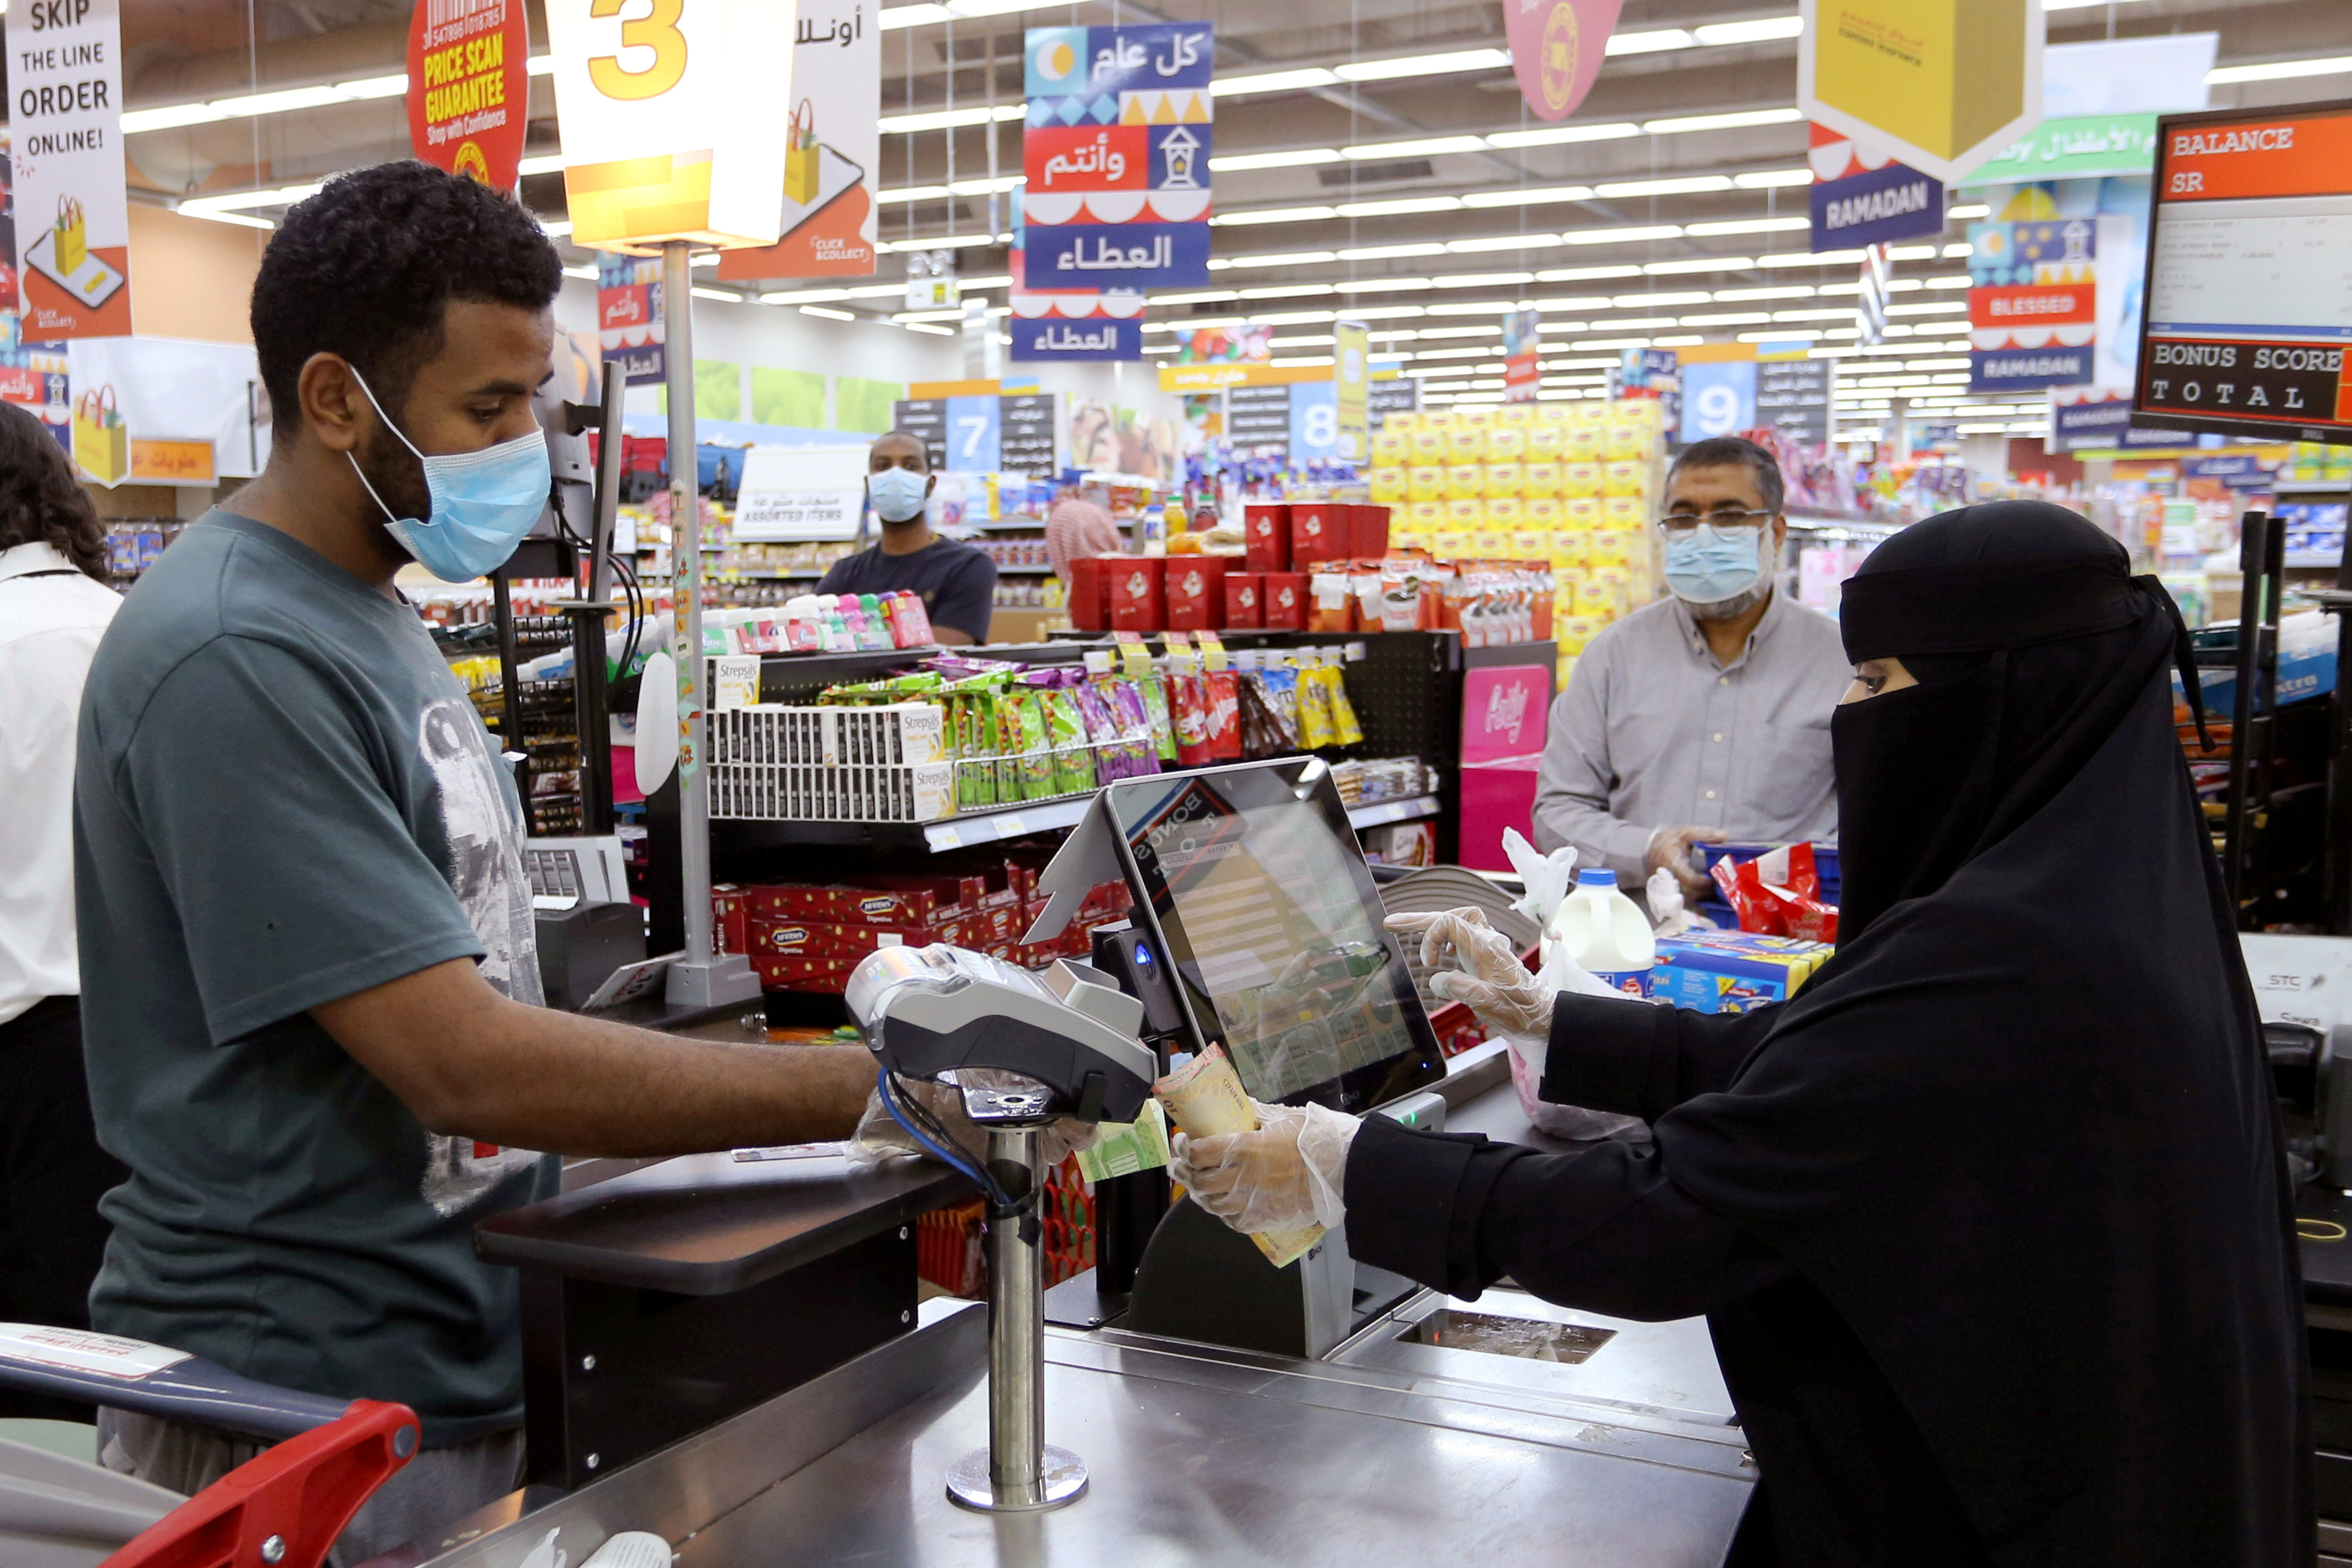 People wearing protective face masks and gloves shop at a supermarket, following the outbreak of the coronavirus disease (COVID-19), in Riyadh, Saudi Arabia May 11, 2020. REUTERS/Ahmed Yosri/File Photo